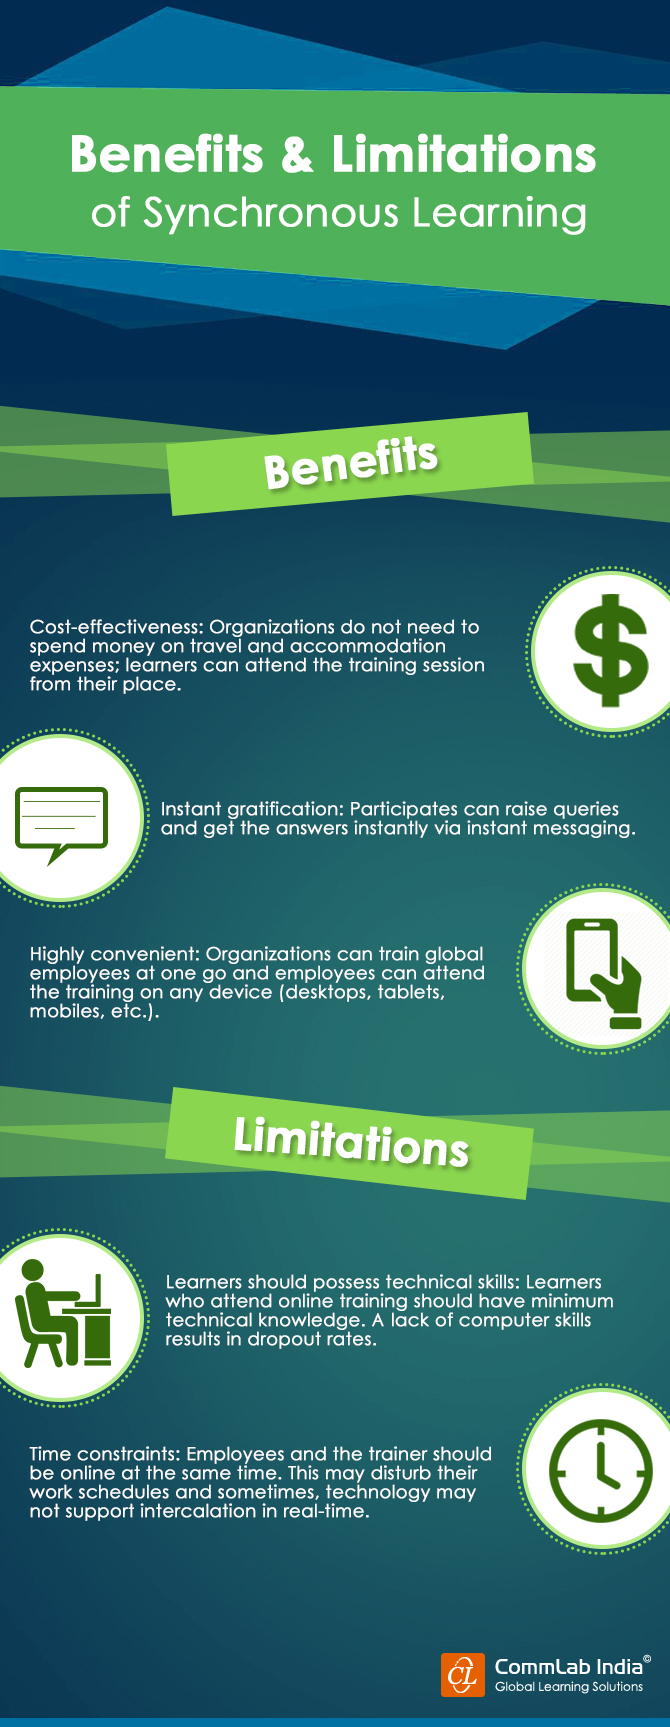 Benefits and Limitations of Synchronous Learning [Infographic]